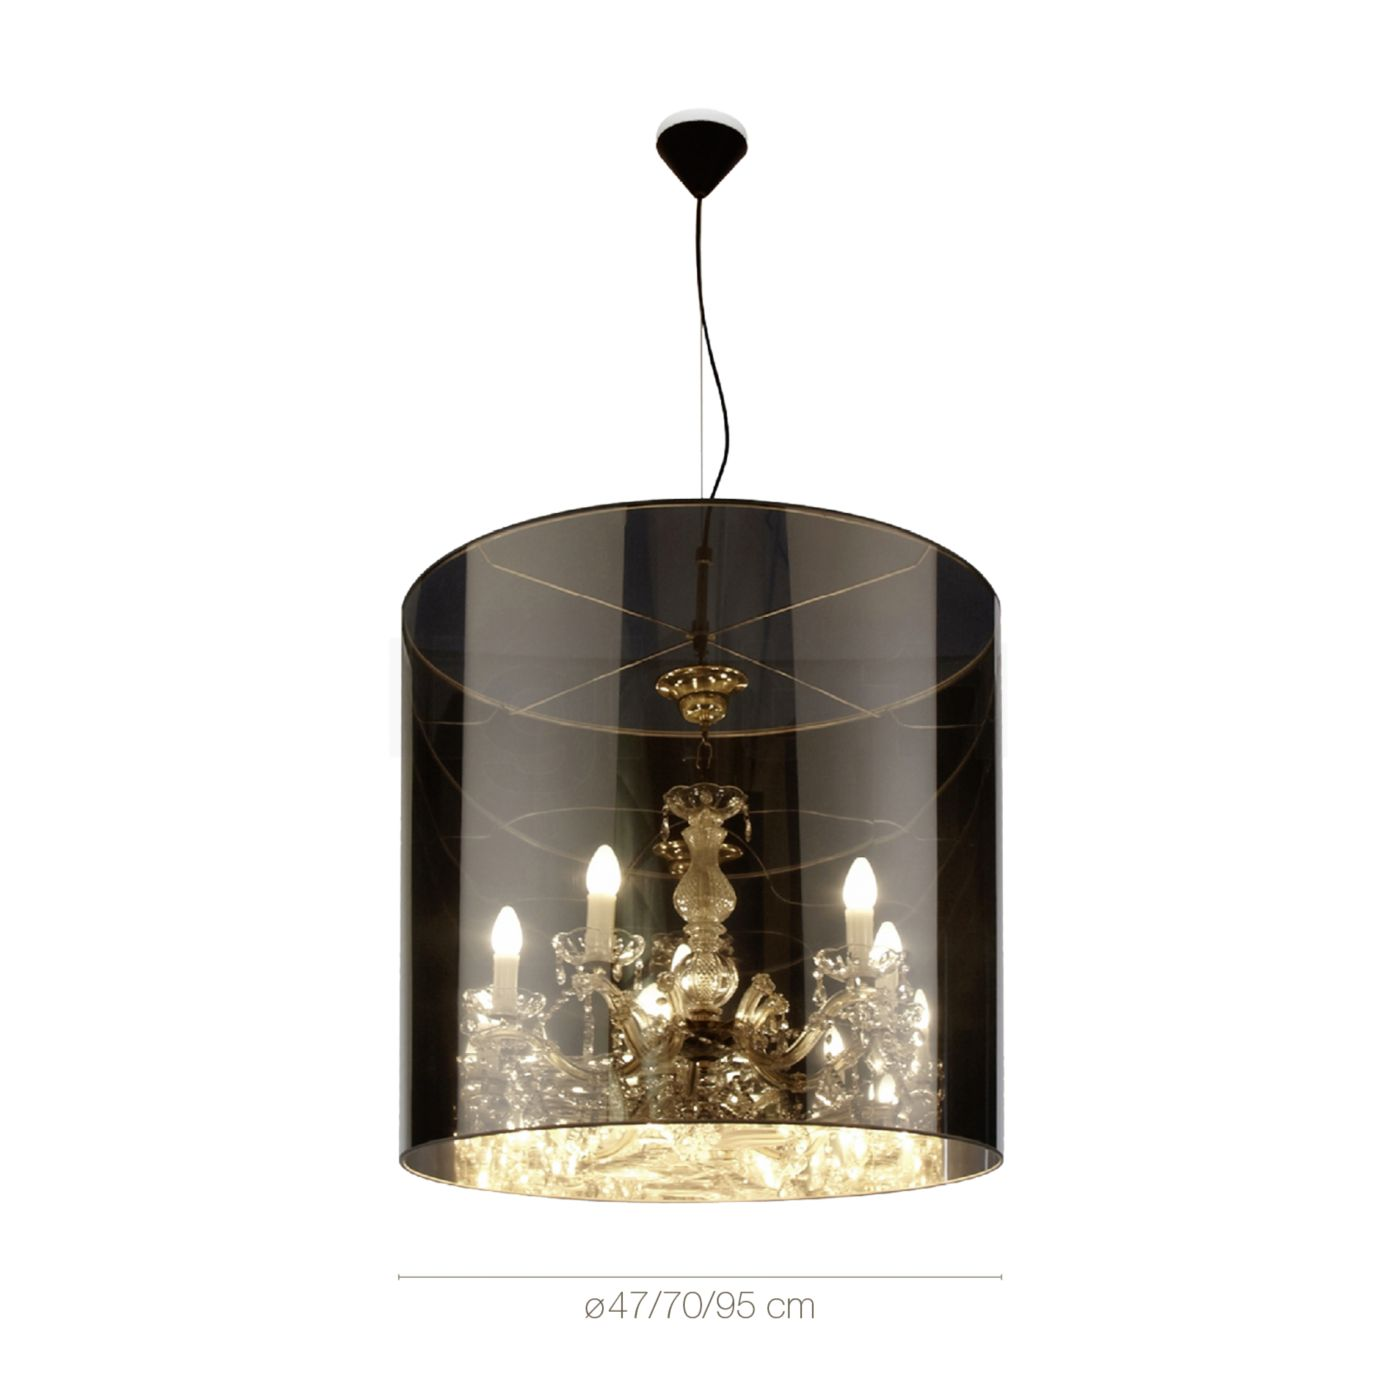 Moooi light shade shade pendant lights buy at light11 mozeypictures Image collections